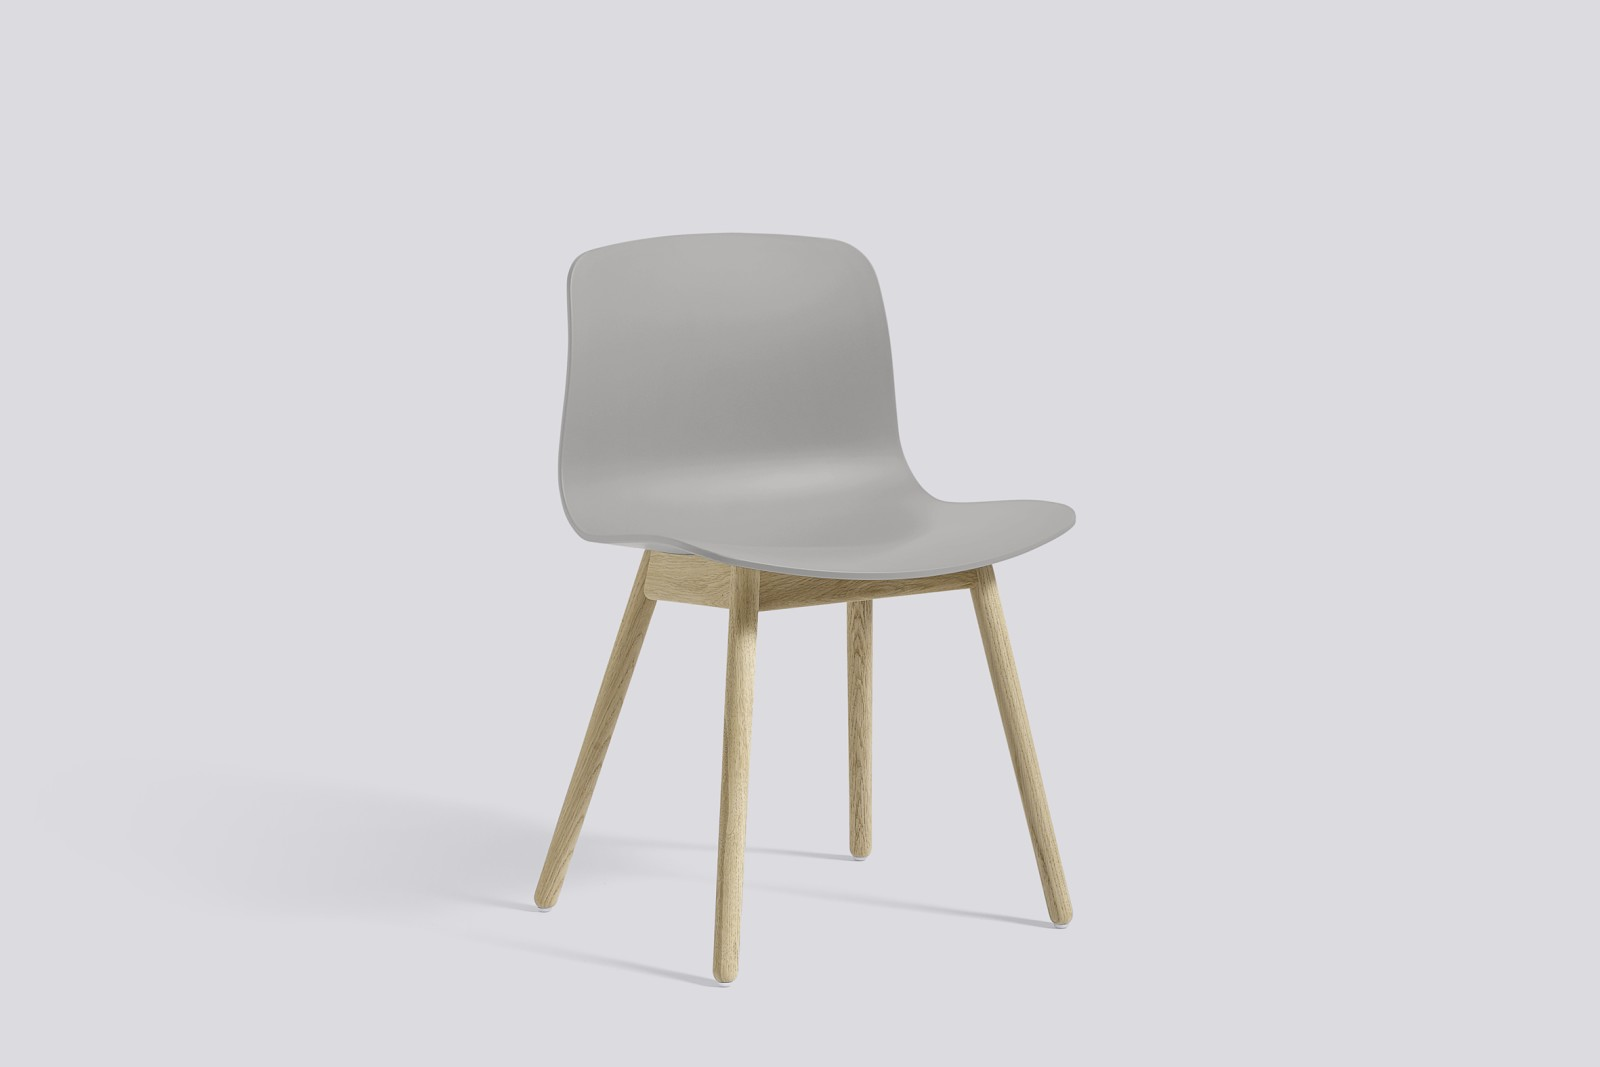 About A Chair AAC12 Concrete Grey Seat and Soap Treated Oak Base